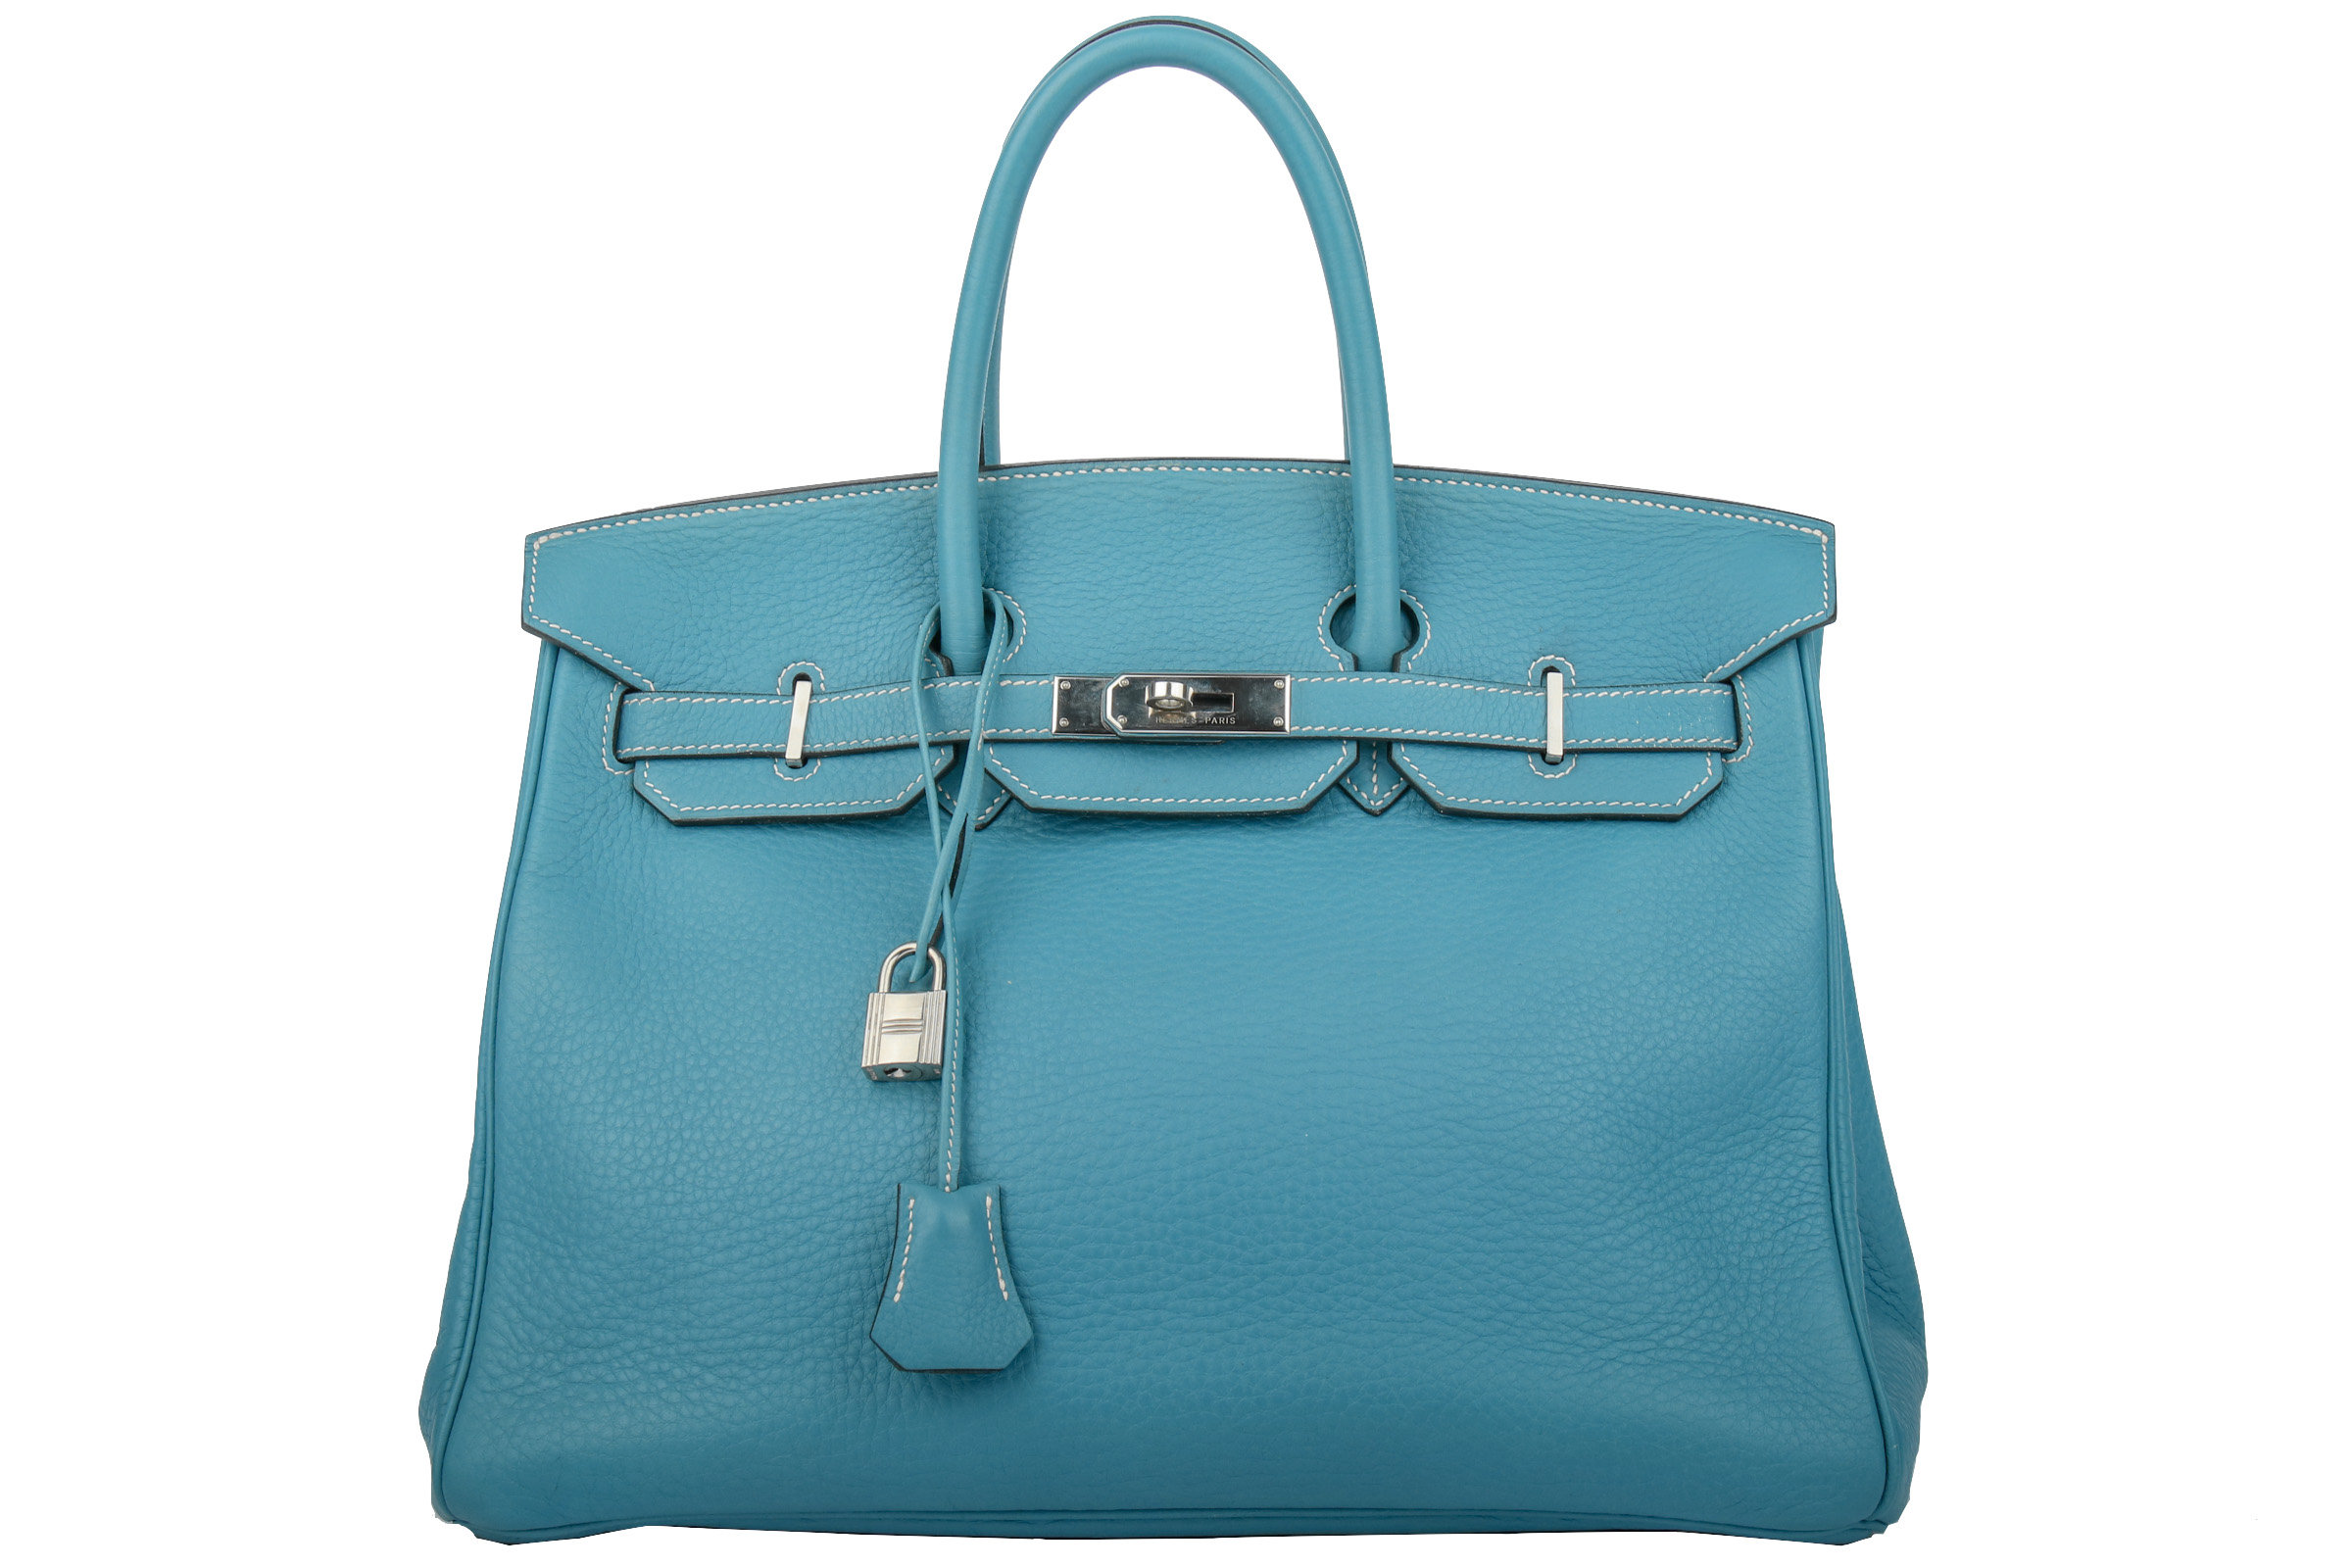 250c55e2aa51c Preview  Hermès Birkin Bag 35 Blue Jean Togo